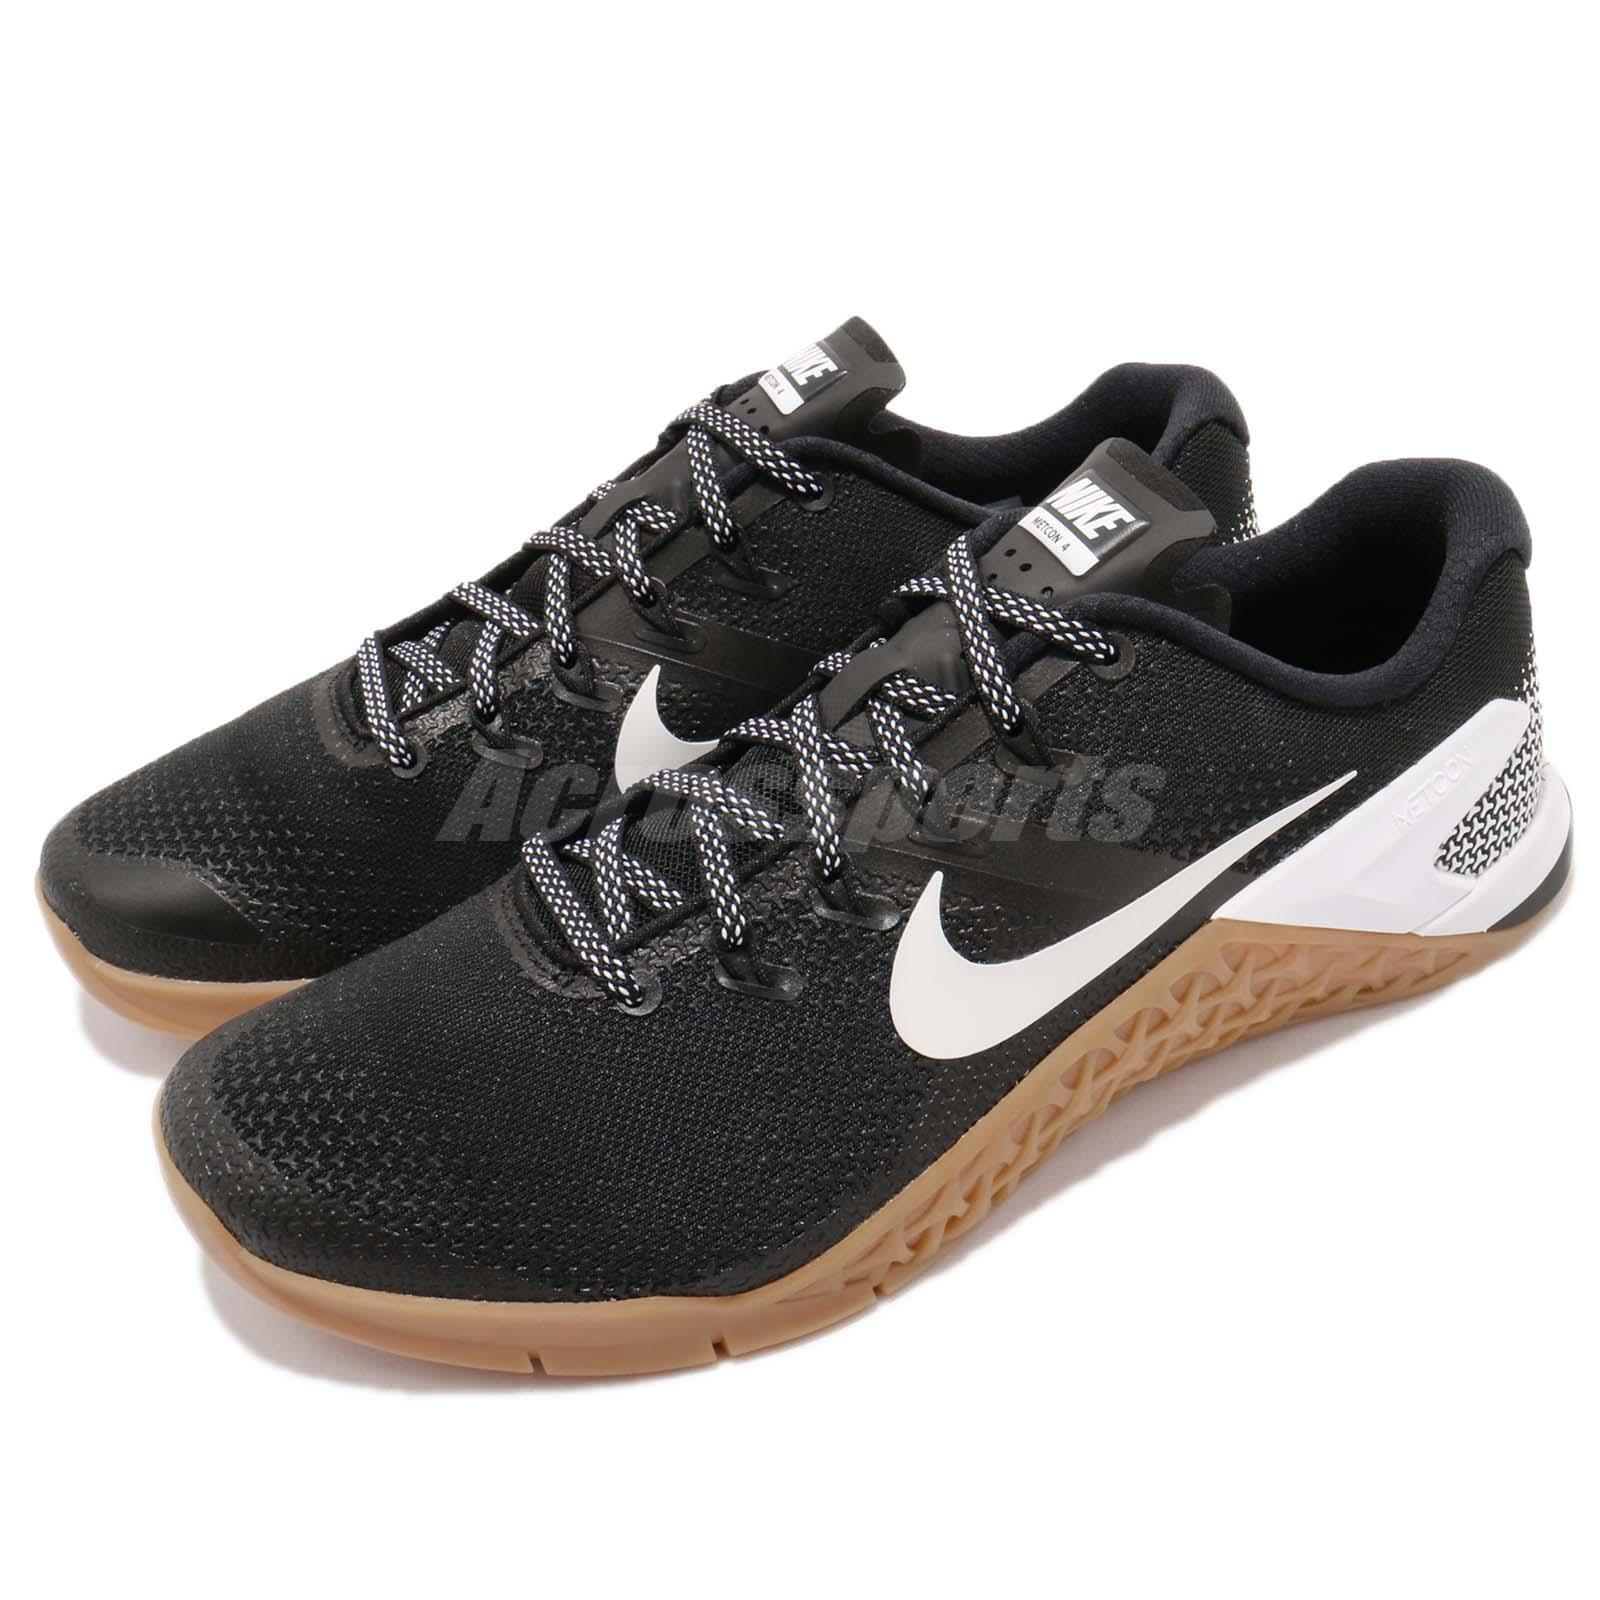 Nike Metcon 4 IV Black White Gum Men Cross Training shoes Sneakers AH7453-006